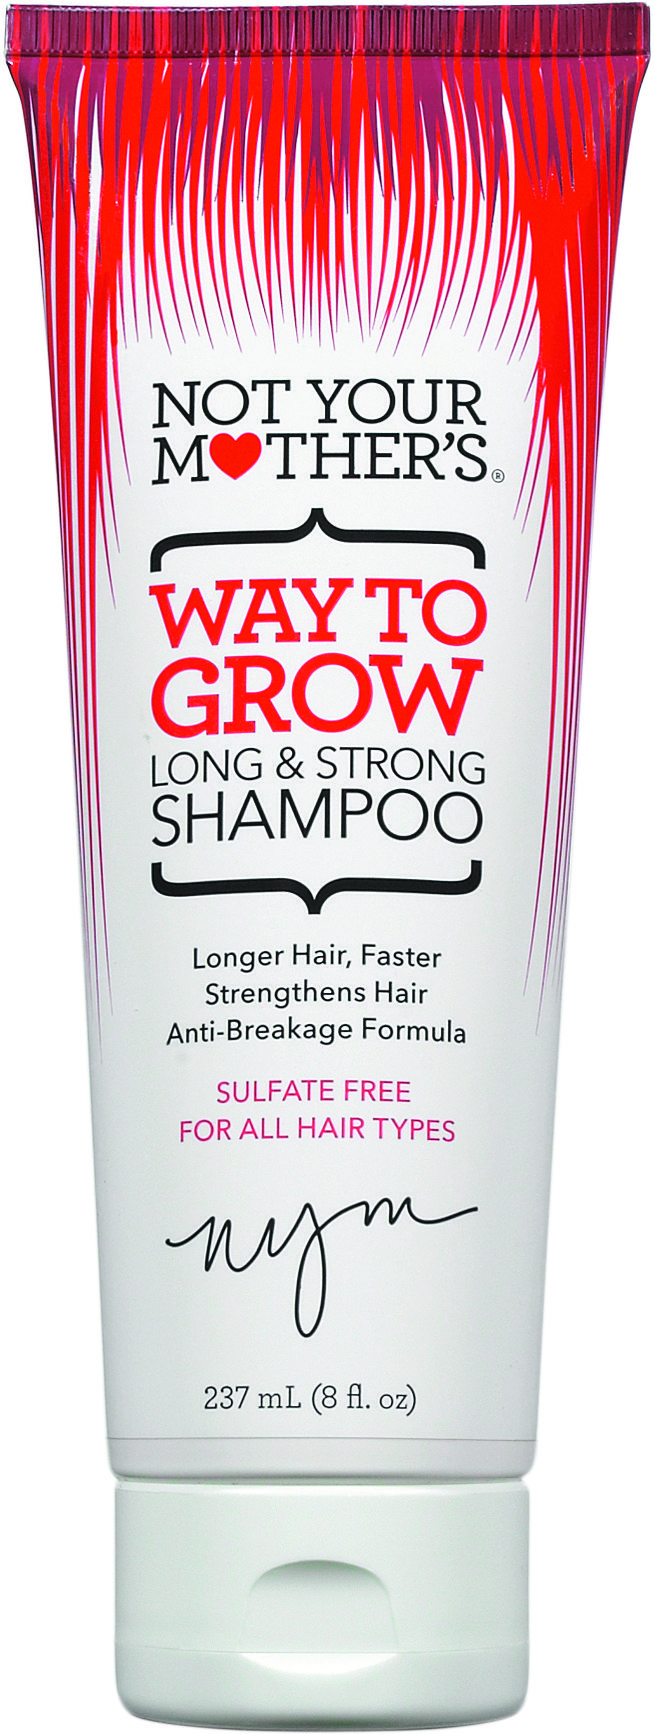 Not Your Mother's Way to Grow Long & Strong Shampoo. I've heard good things...